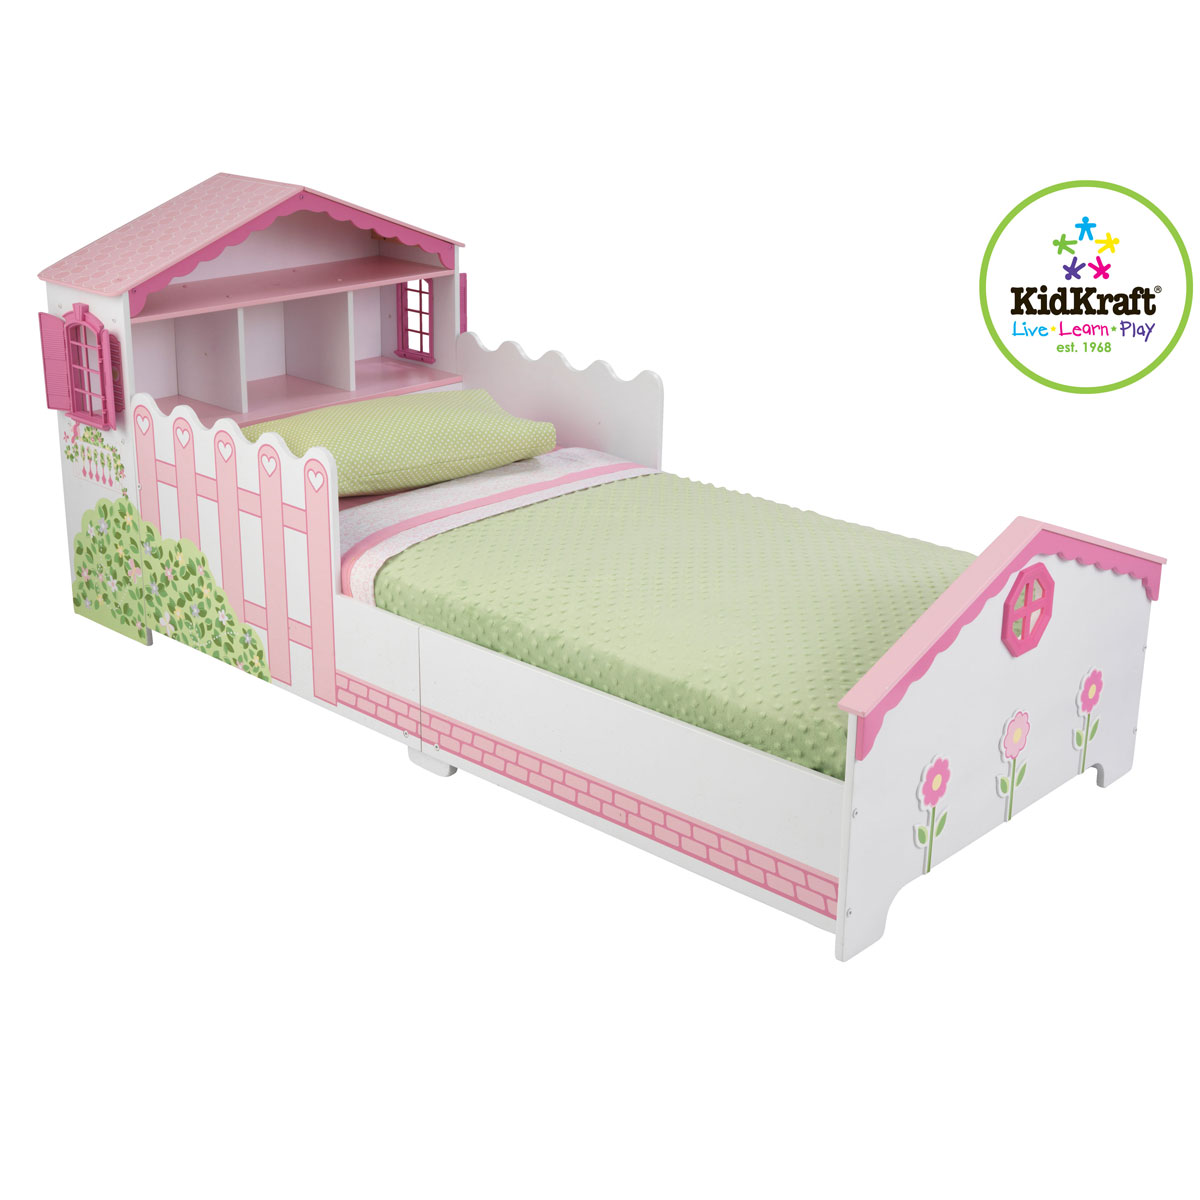 KidKraft Dollhouse Toddler Bed 76255